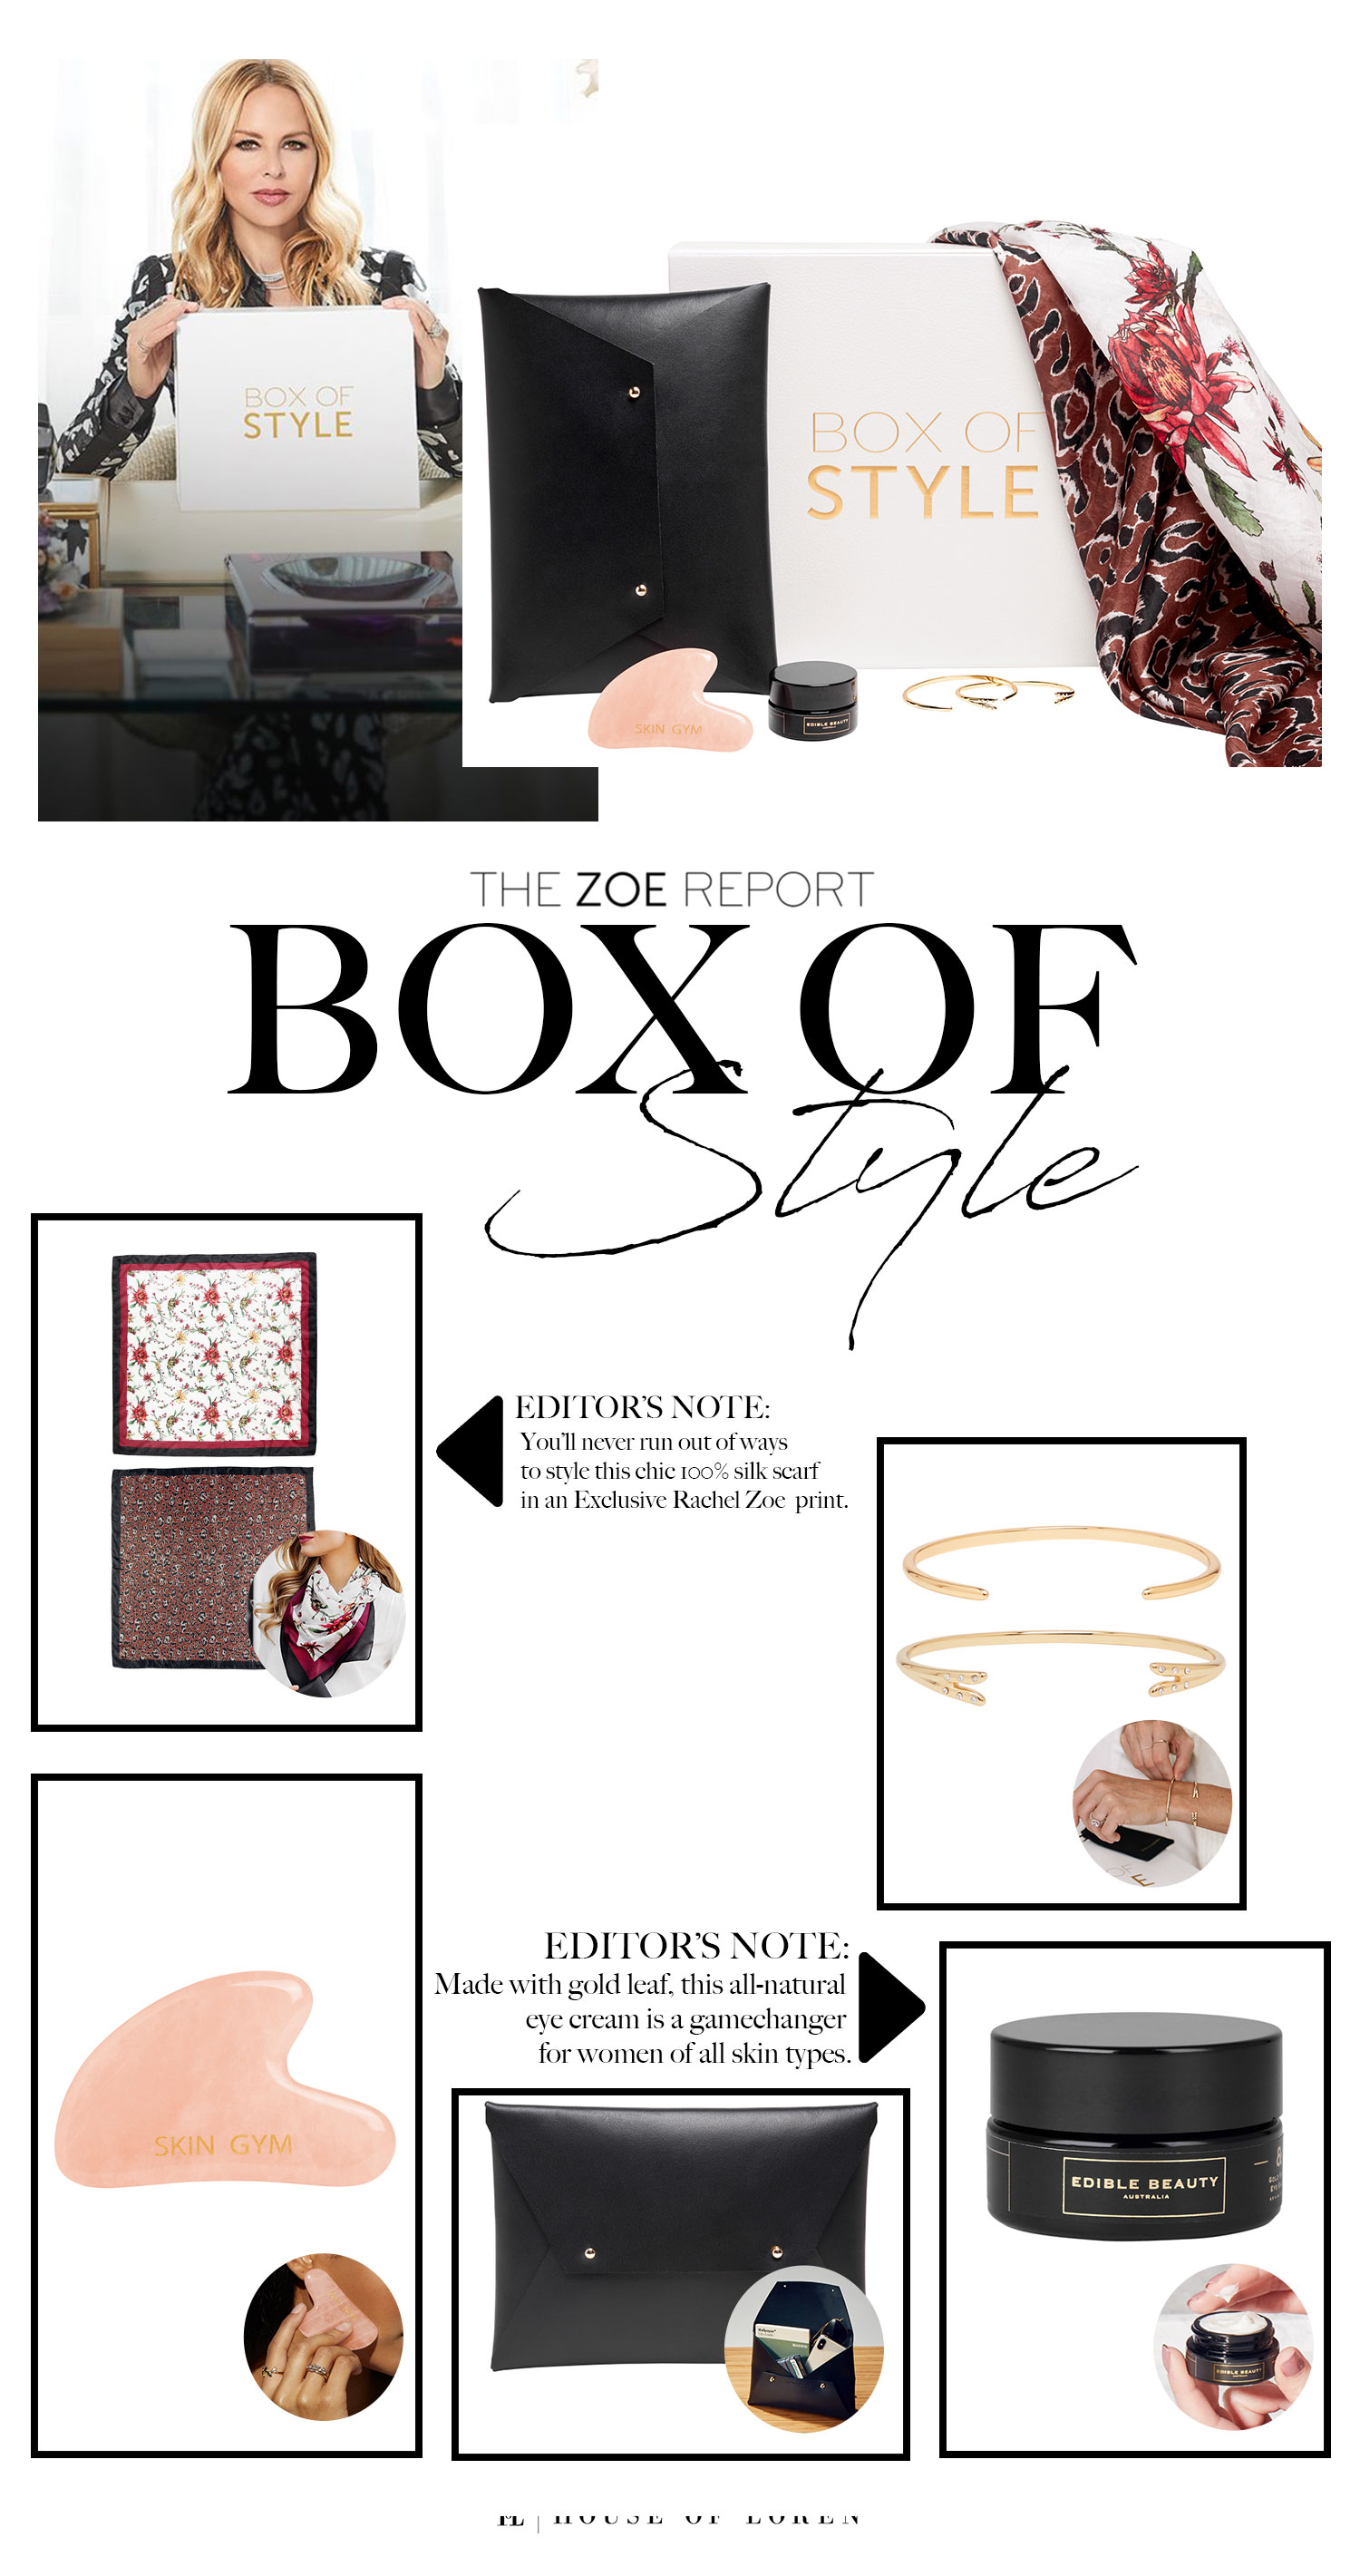 Box of Style Spring Edition Review